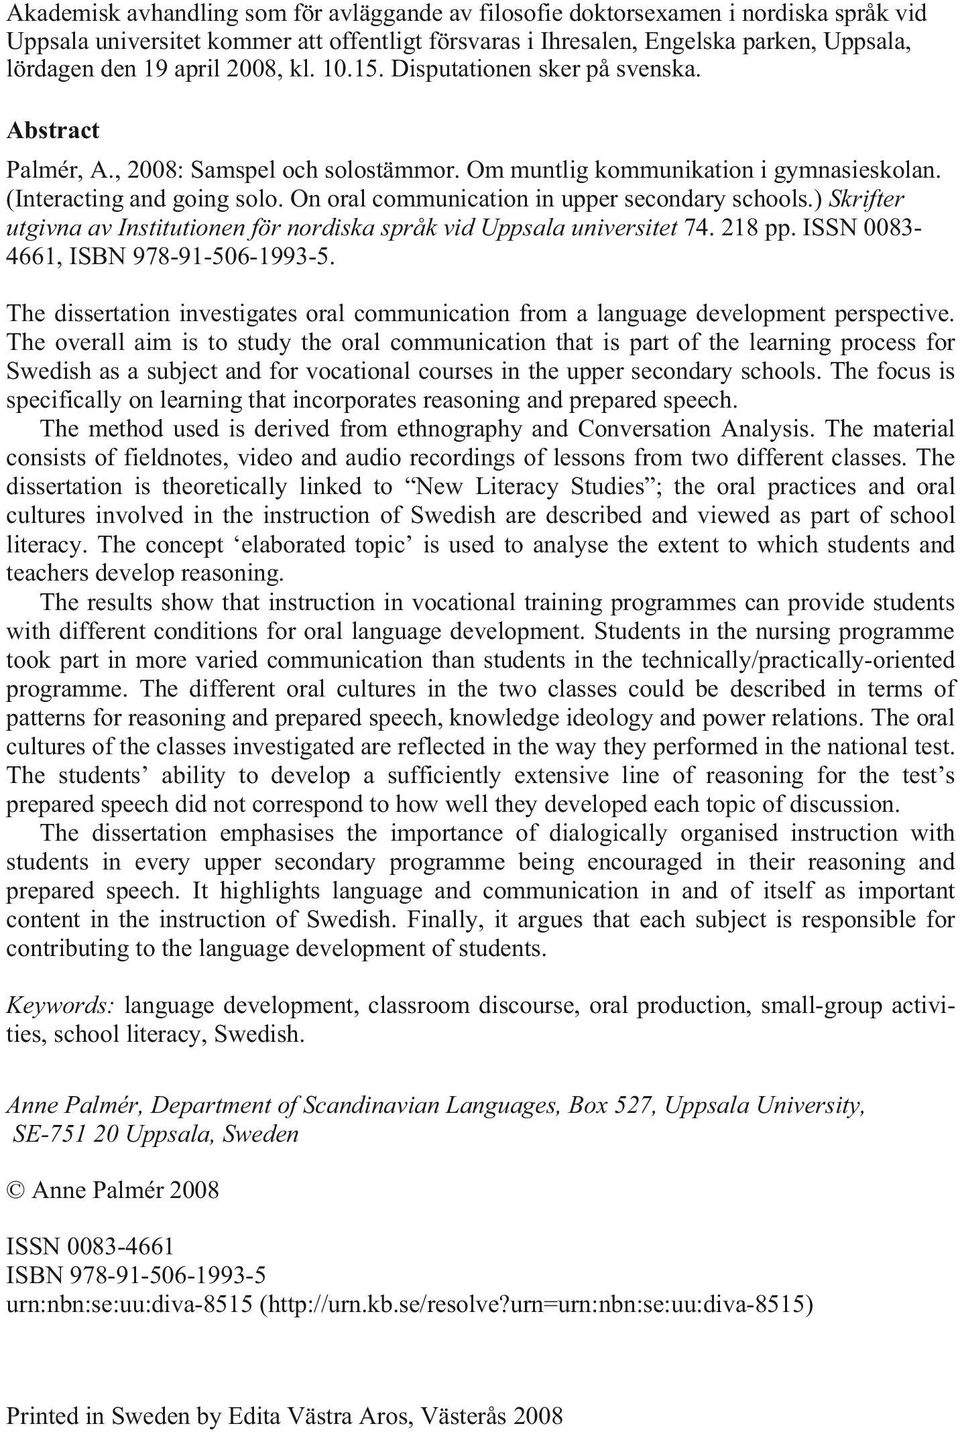 On oral communication in upper secondary schools.) Skrifter utgivna av Institutionen för nordiska språk vid Uppsala universitet 74. 218 pp. ISSN 0083-4661, ISBN 978-91-506-1993-5.